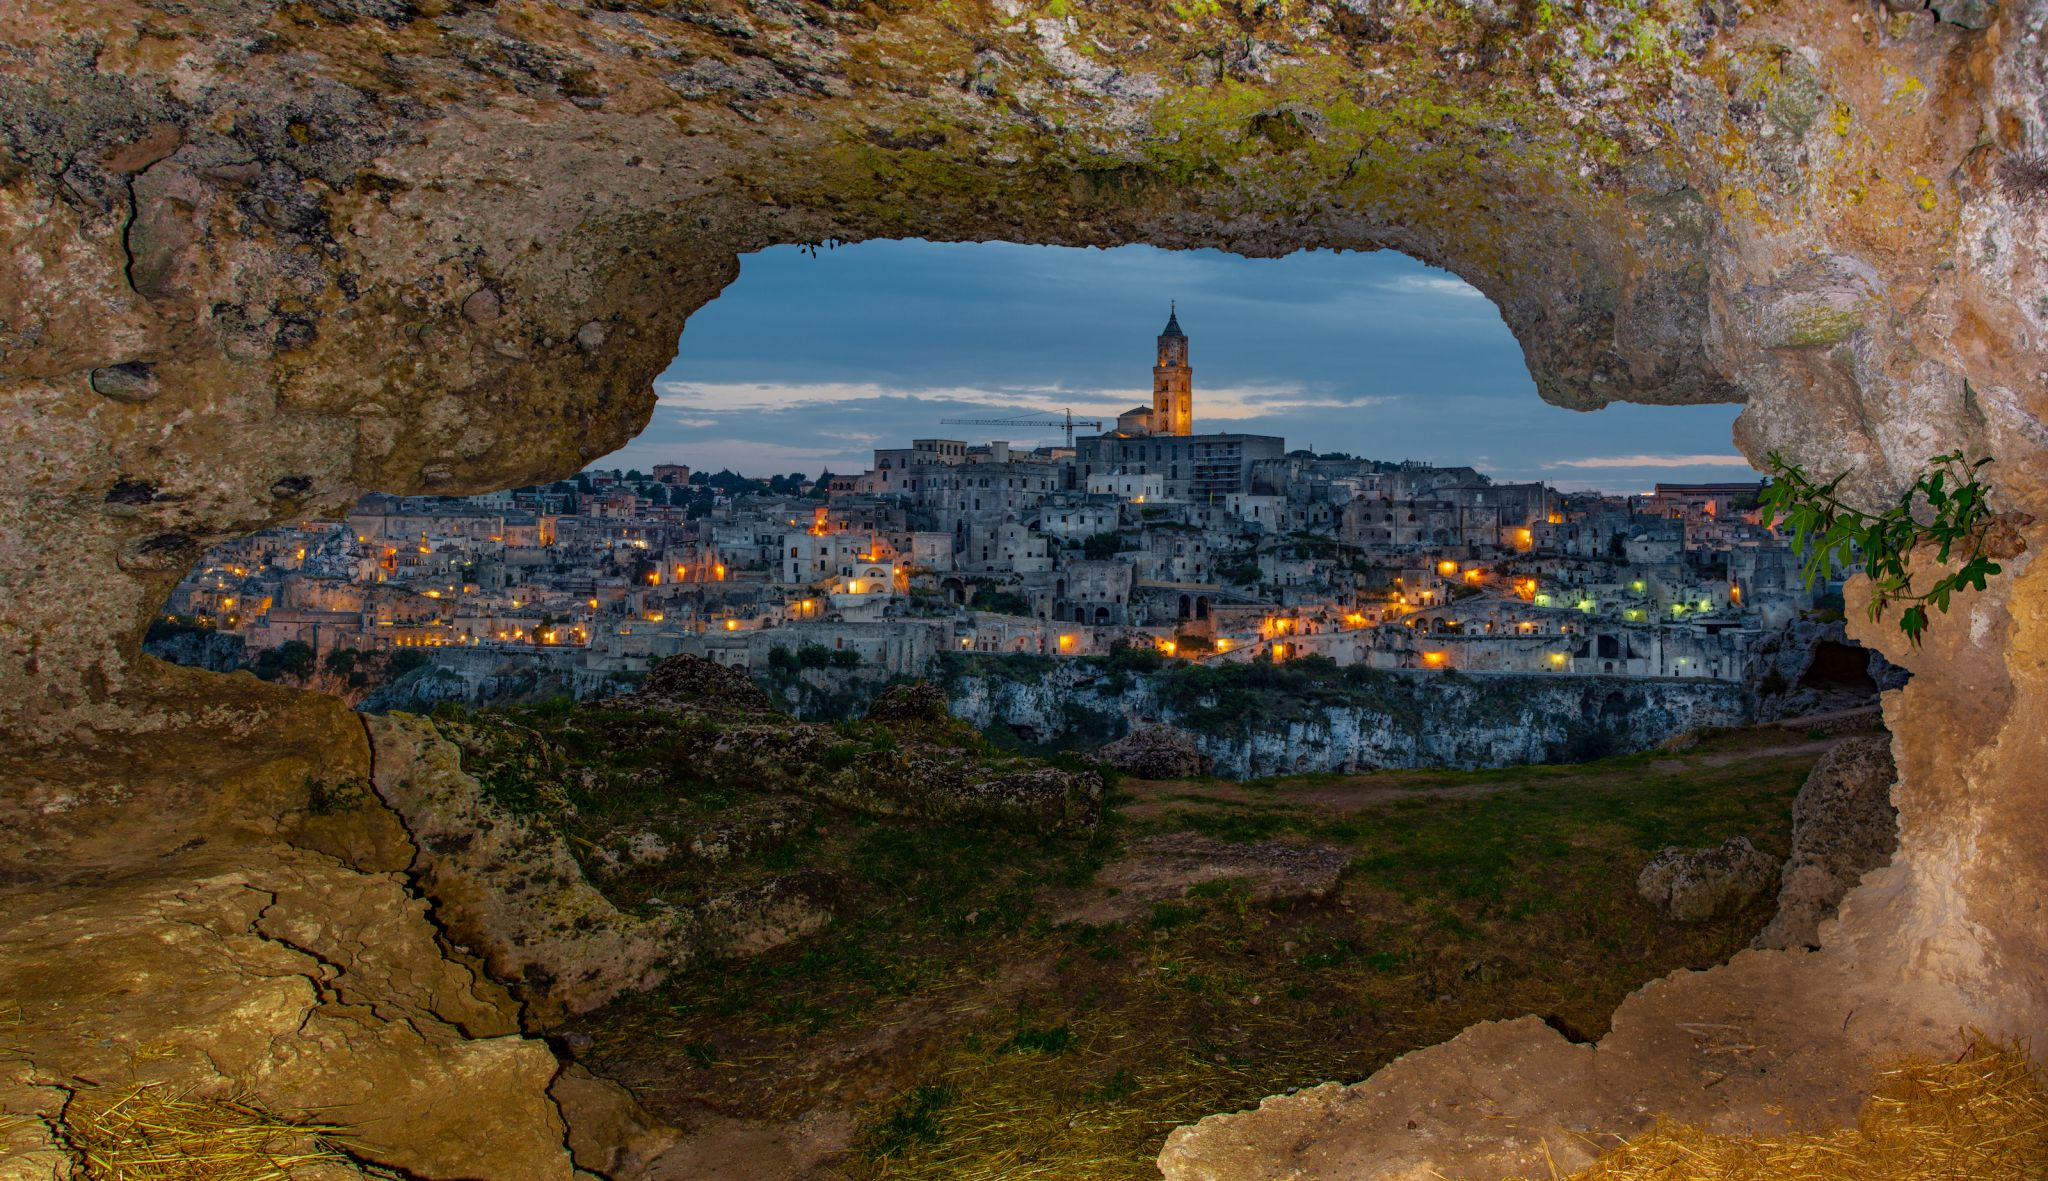 Matera from the Caves, Italy